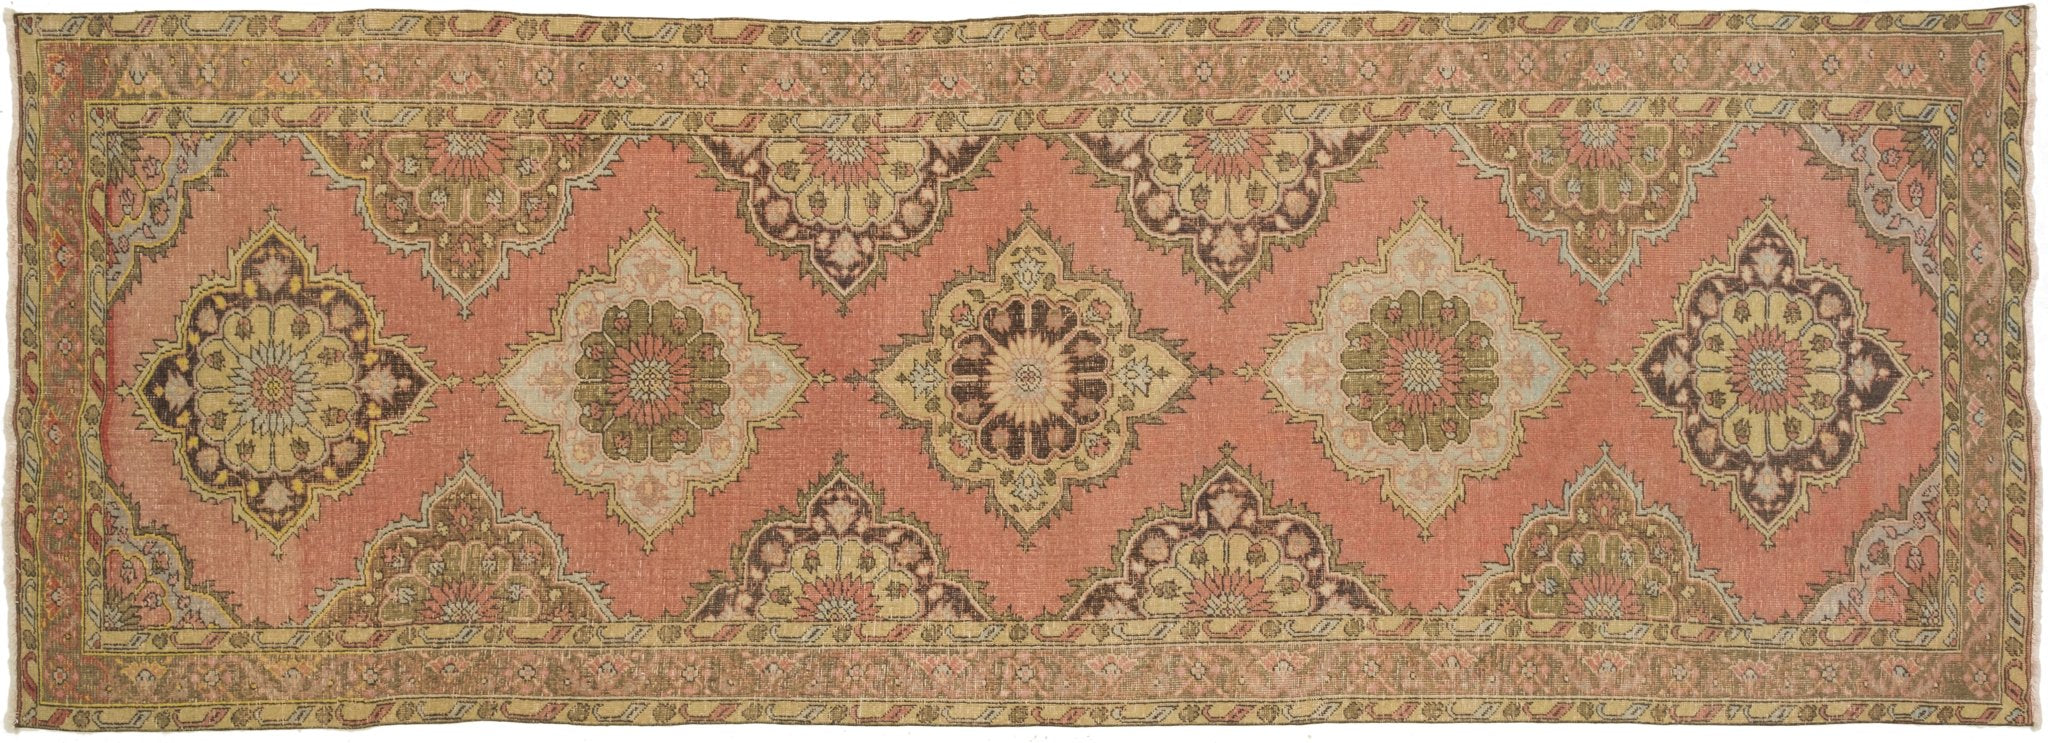 Vintage Turkish Runner Rug Ean